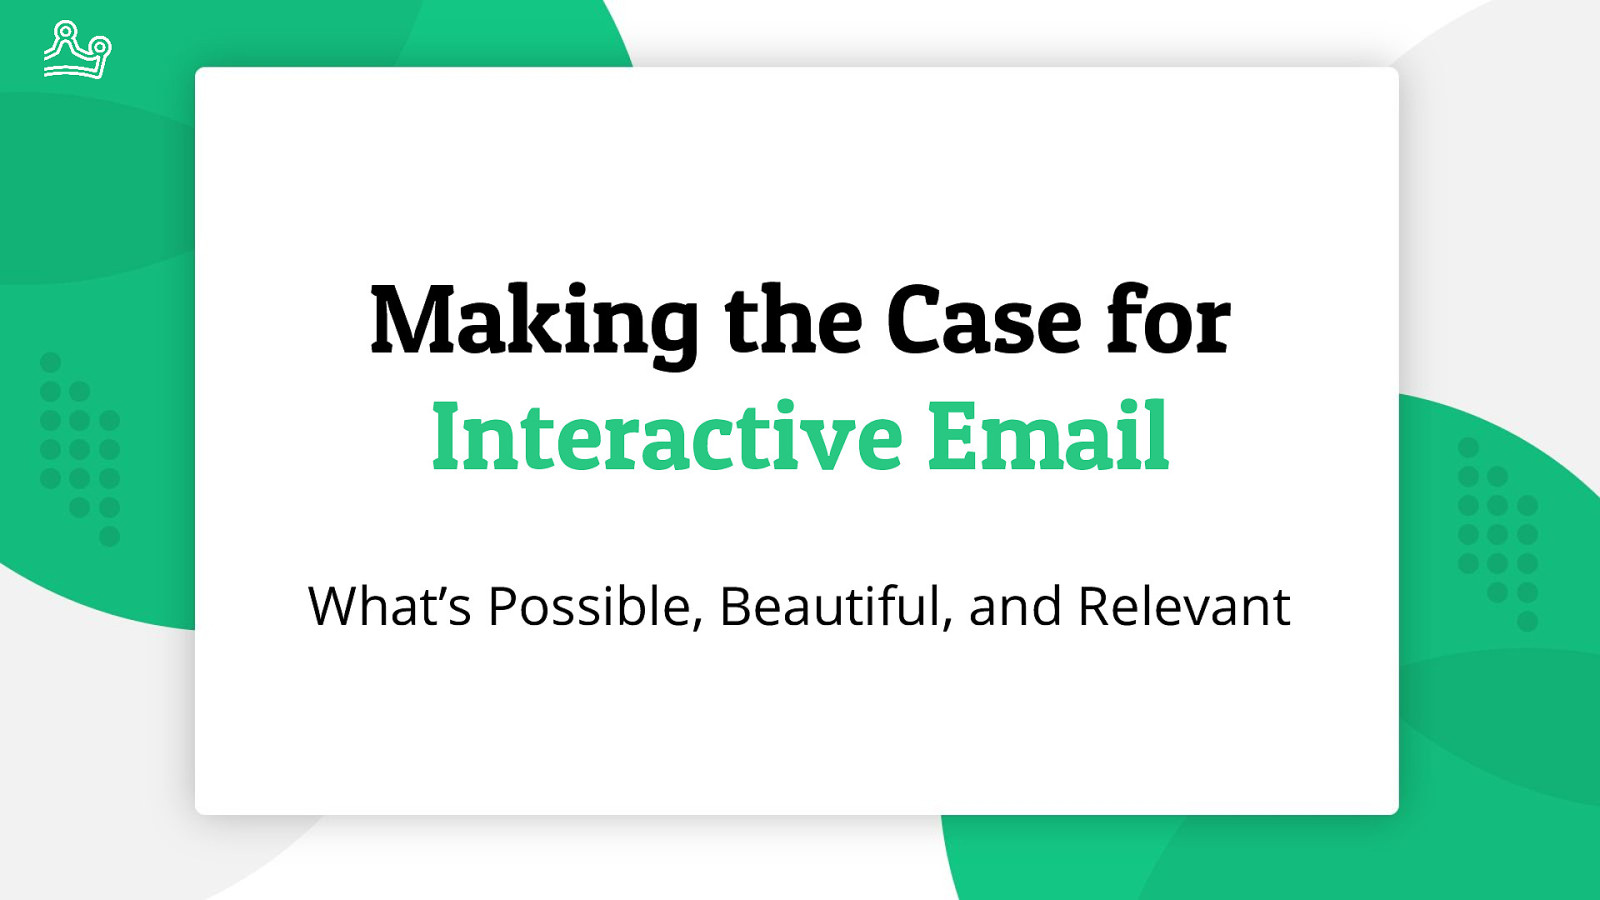 Making the Case for Interactive Email: What's Possible, Beautiful, and Relevant